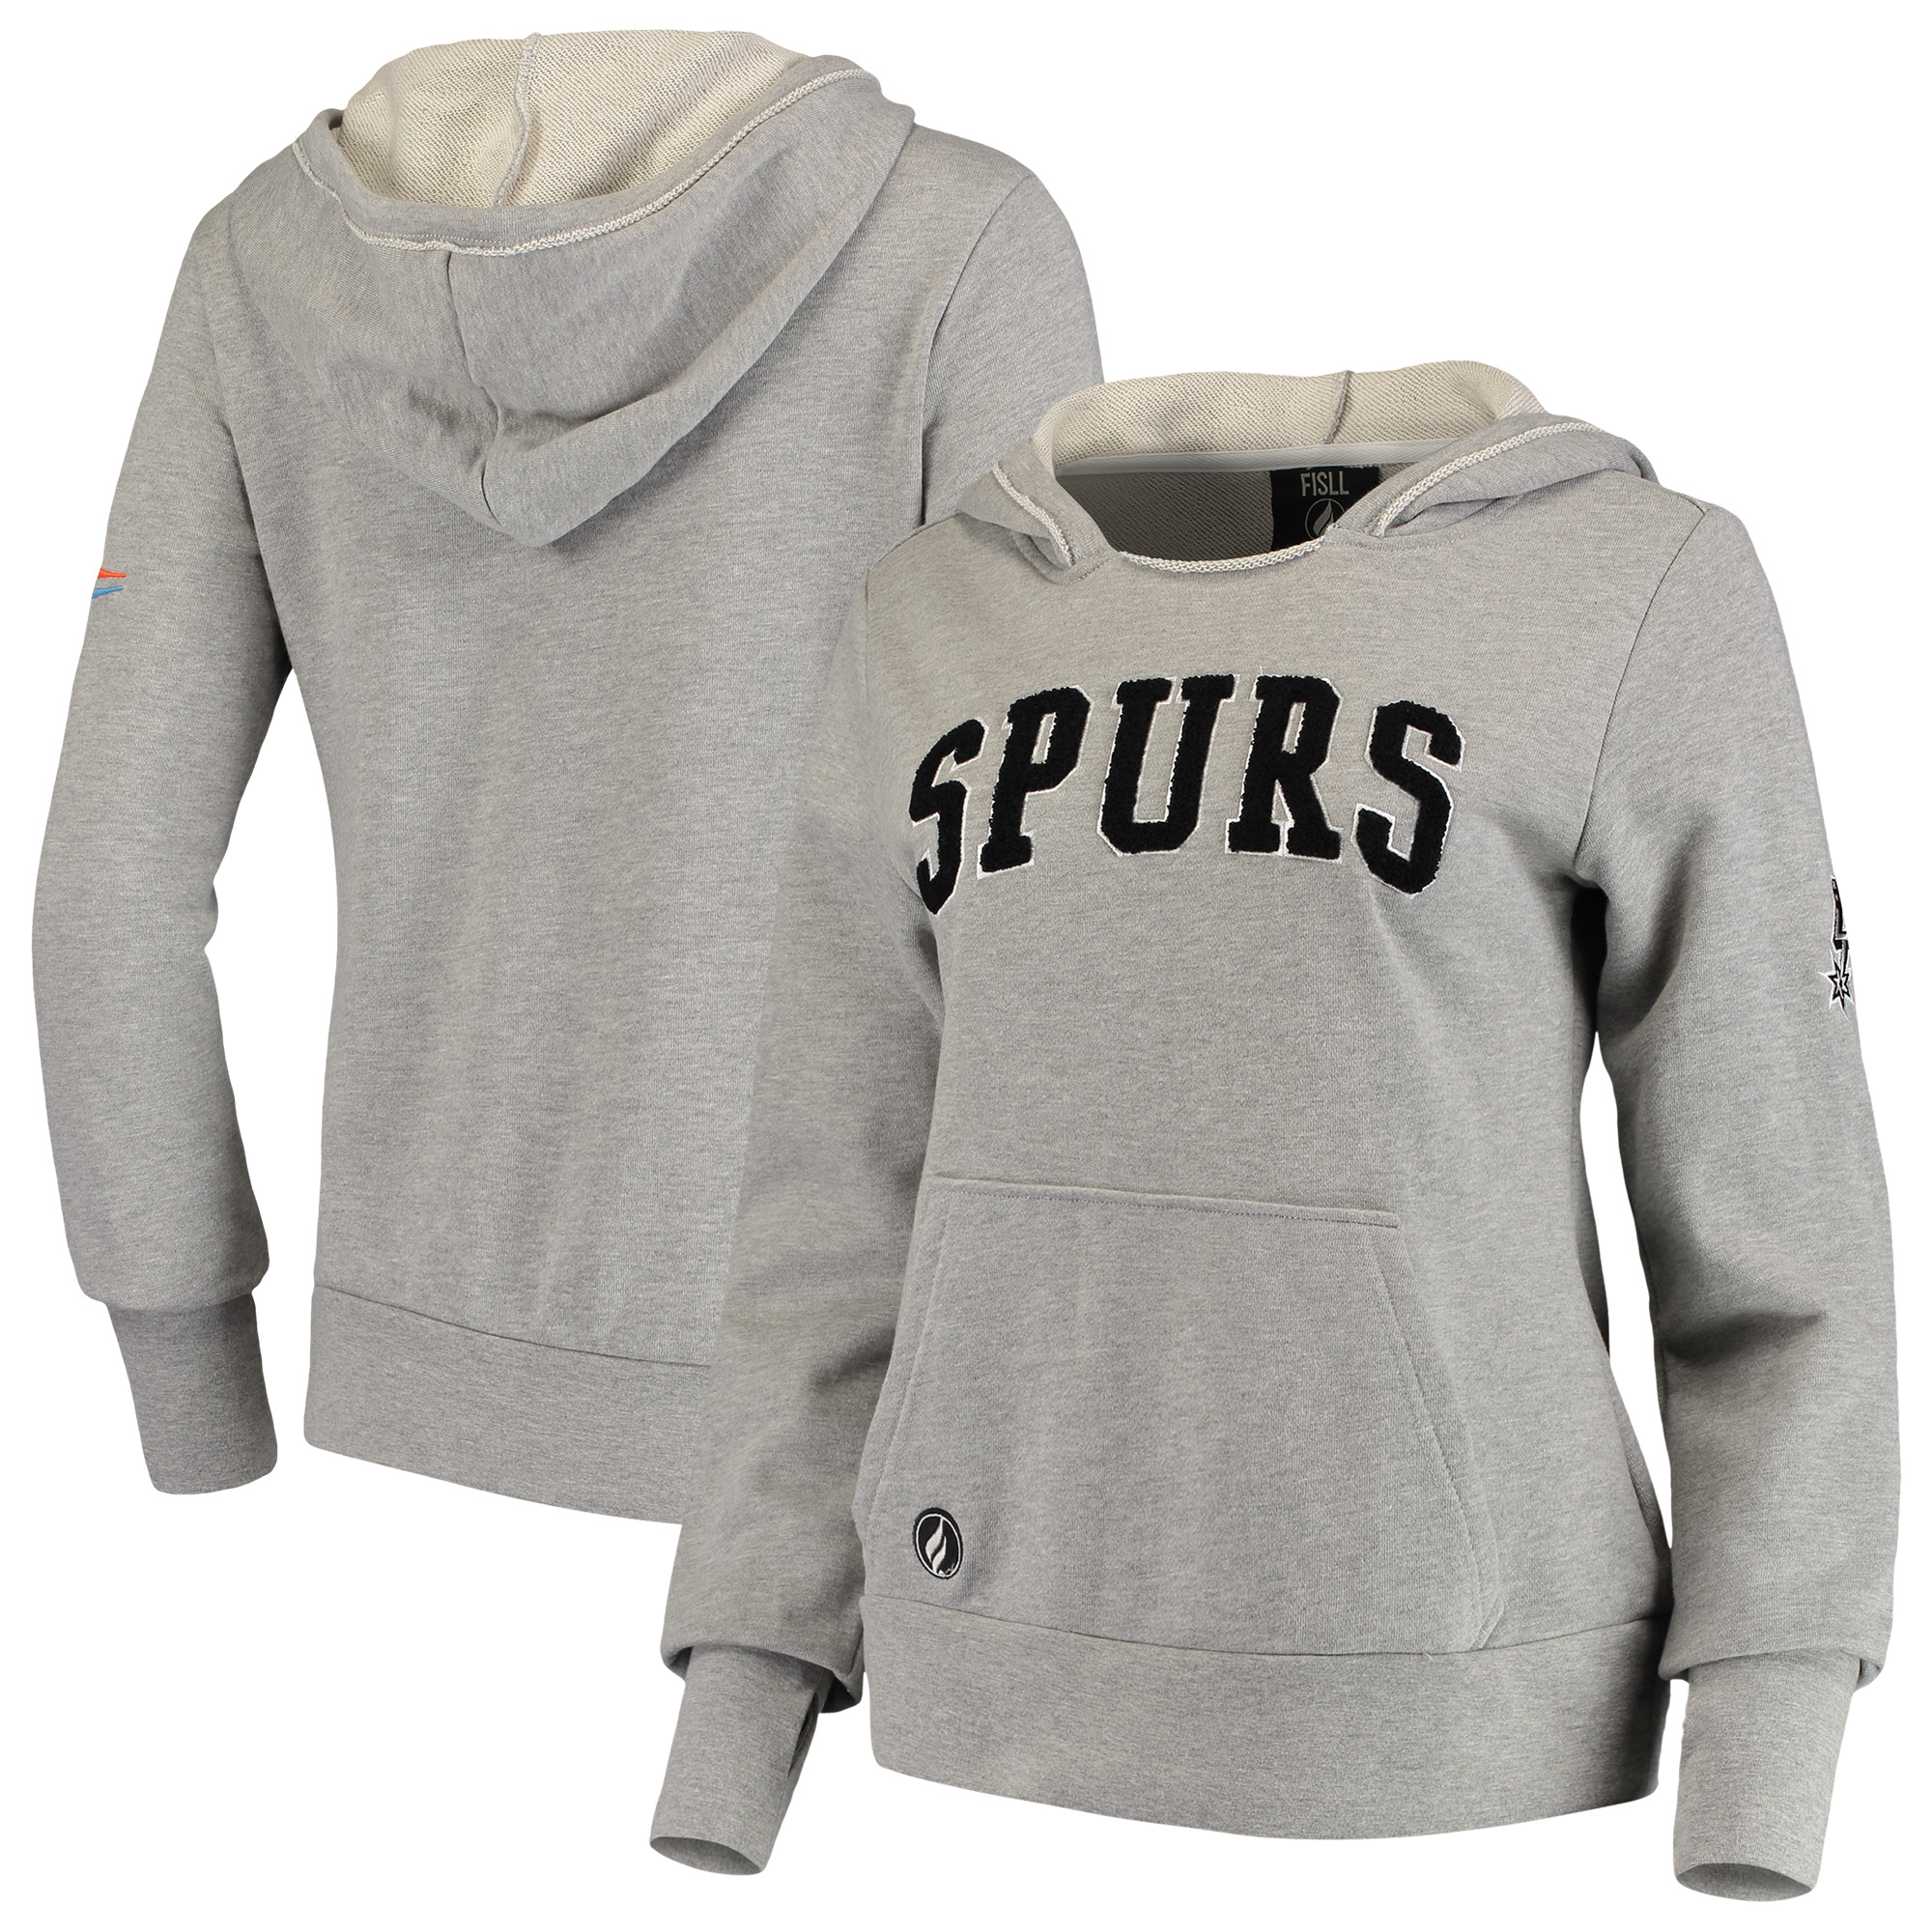 San Antonio Spurs FISLL Women's French Terry Lining Thumbhole Pullover Hoodie - Heather Gray